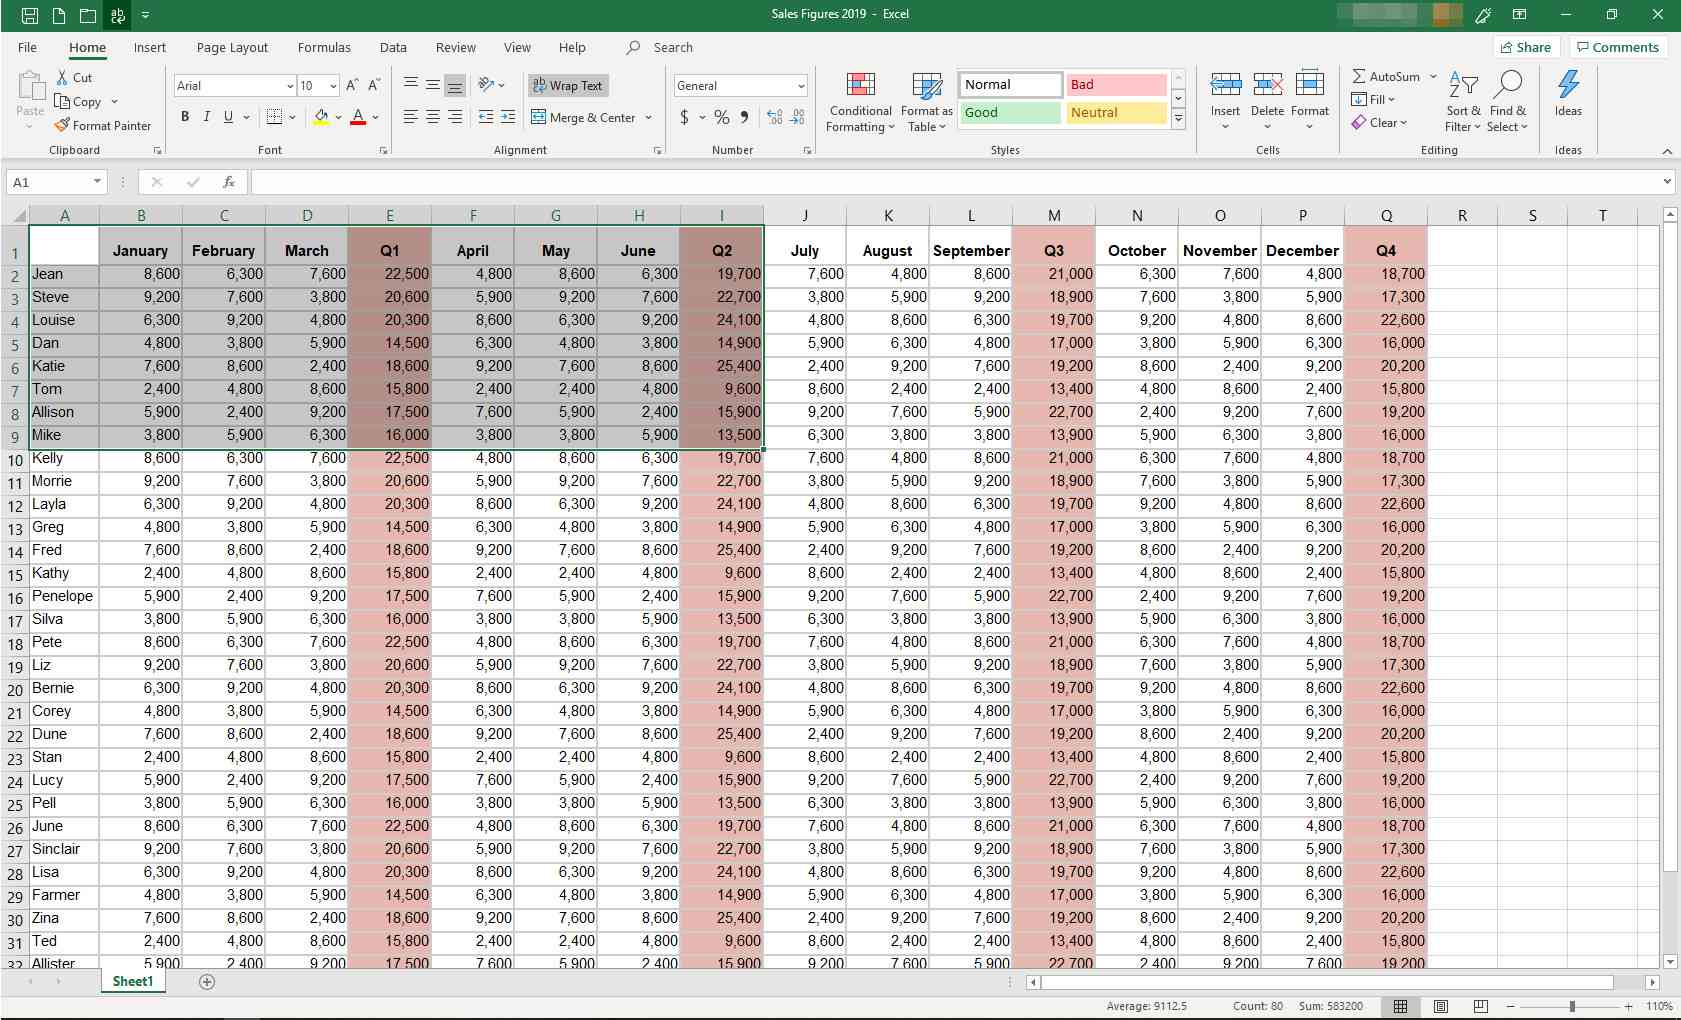 MS Excel spreadsheet with some data highlighted